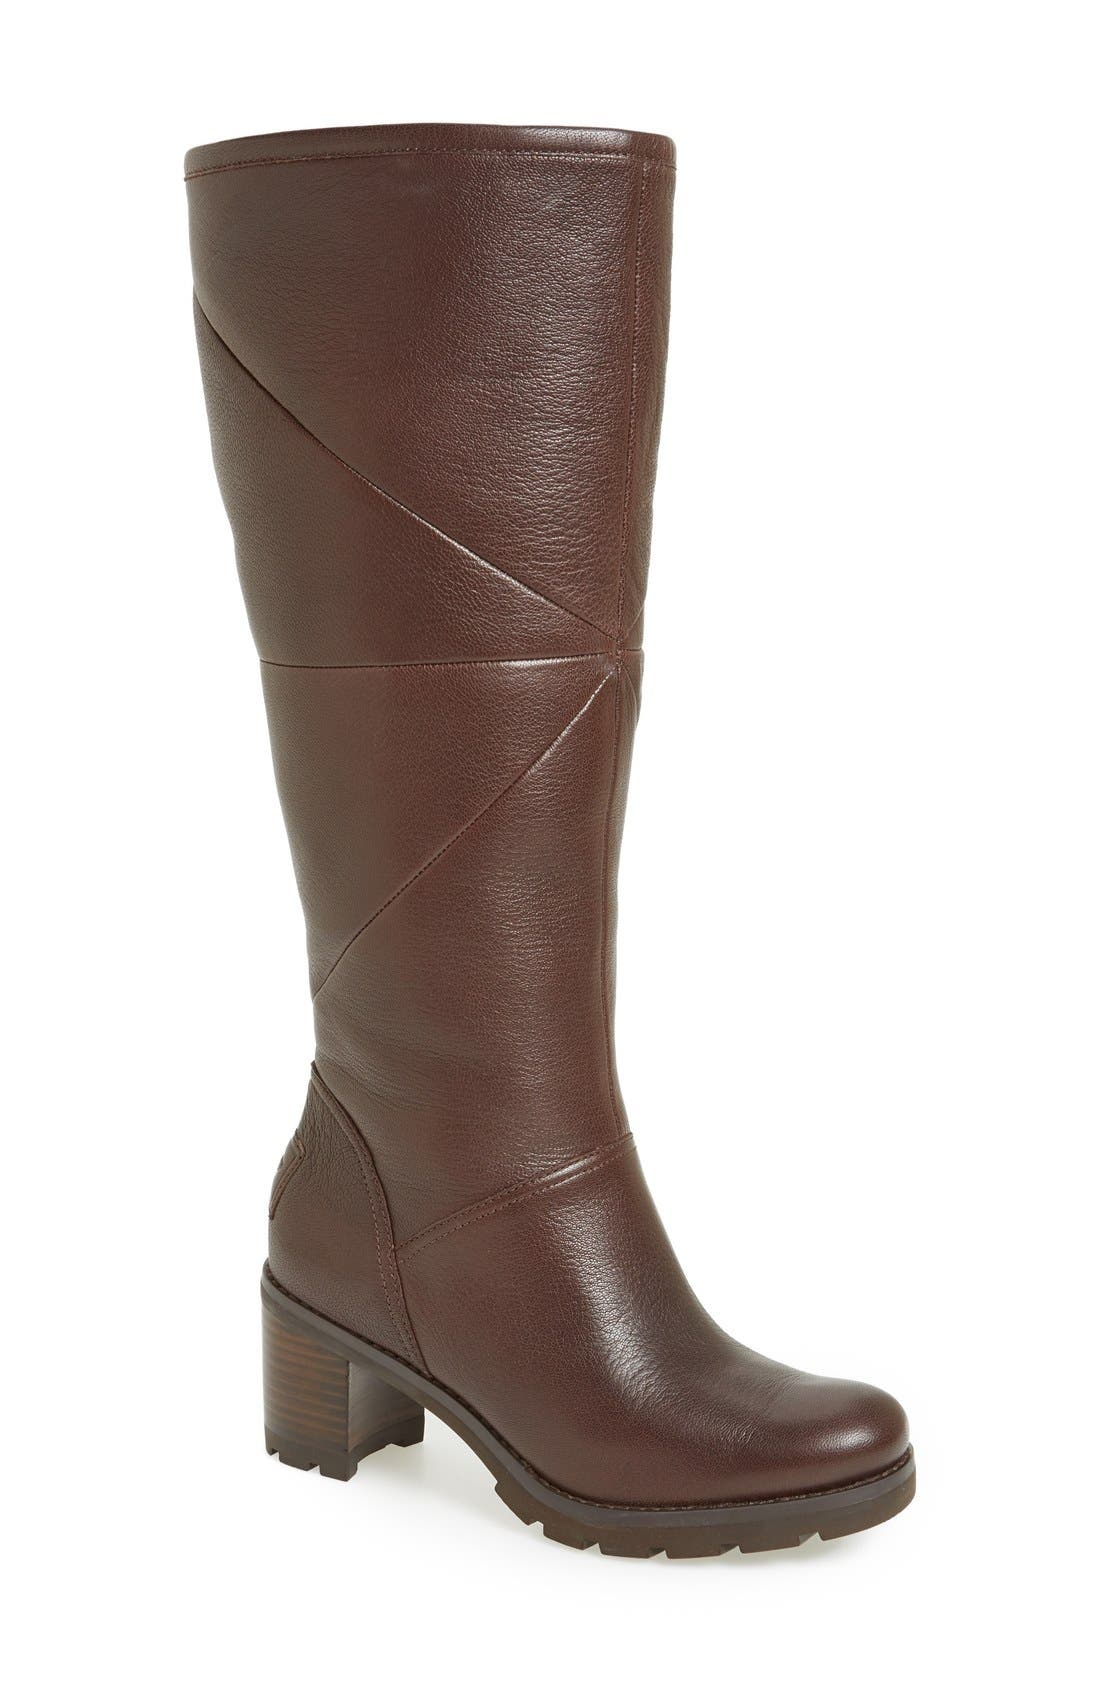 Alternate Image 1 Selected - UGG® 'Avery' Water Resistant Genuine Shearling Lined Leather Boot (Women)